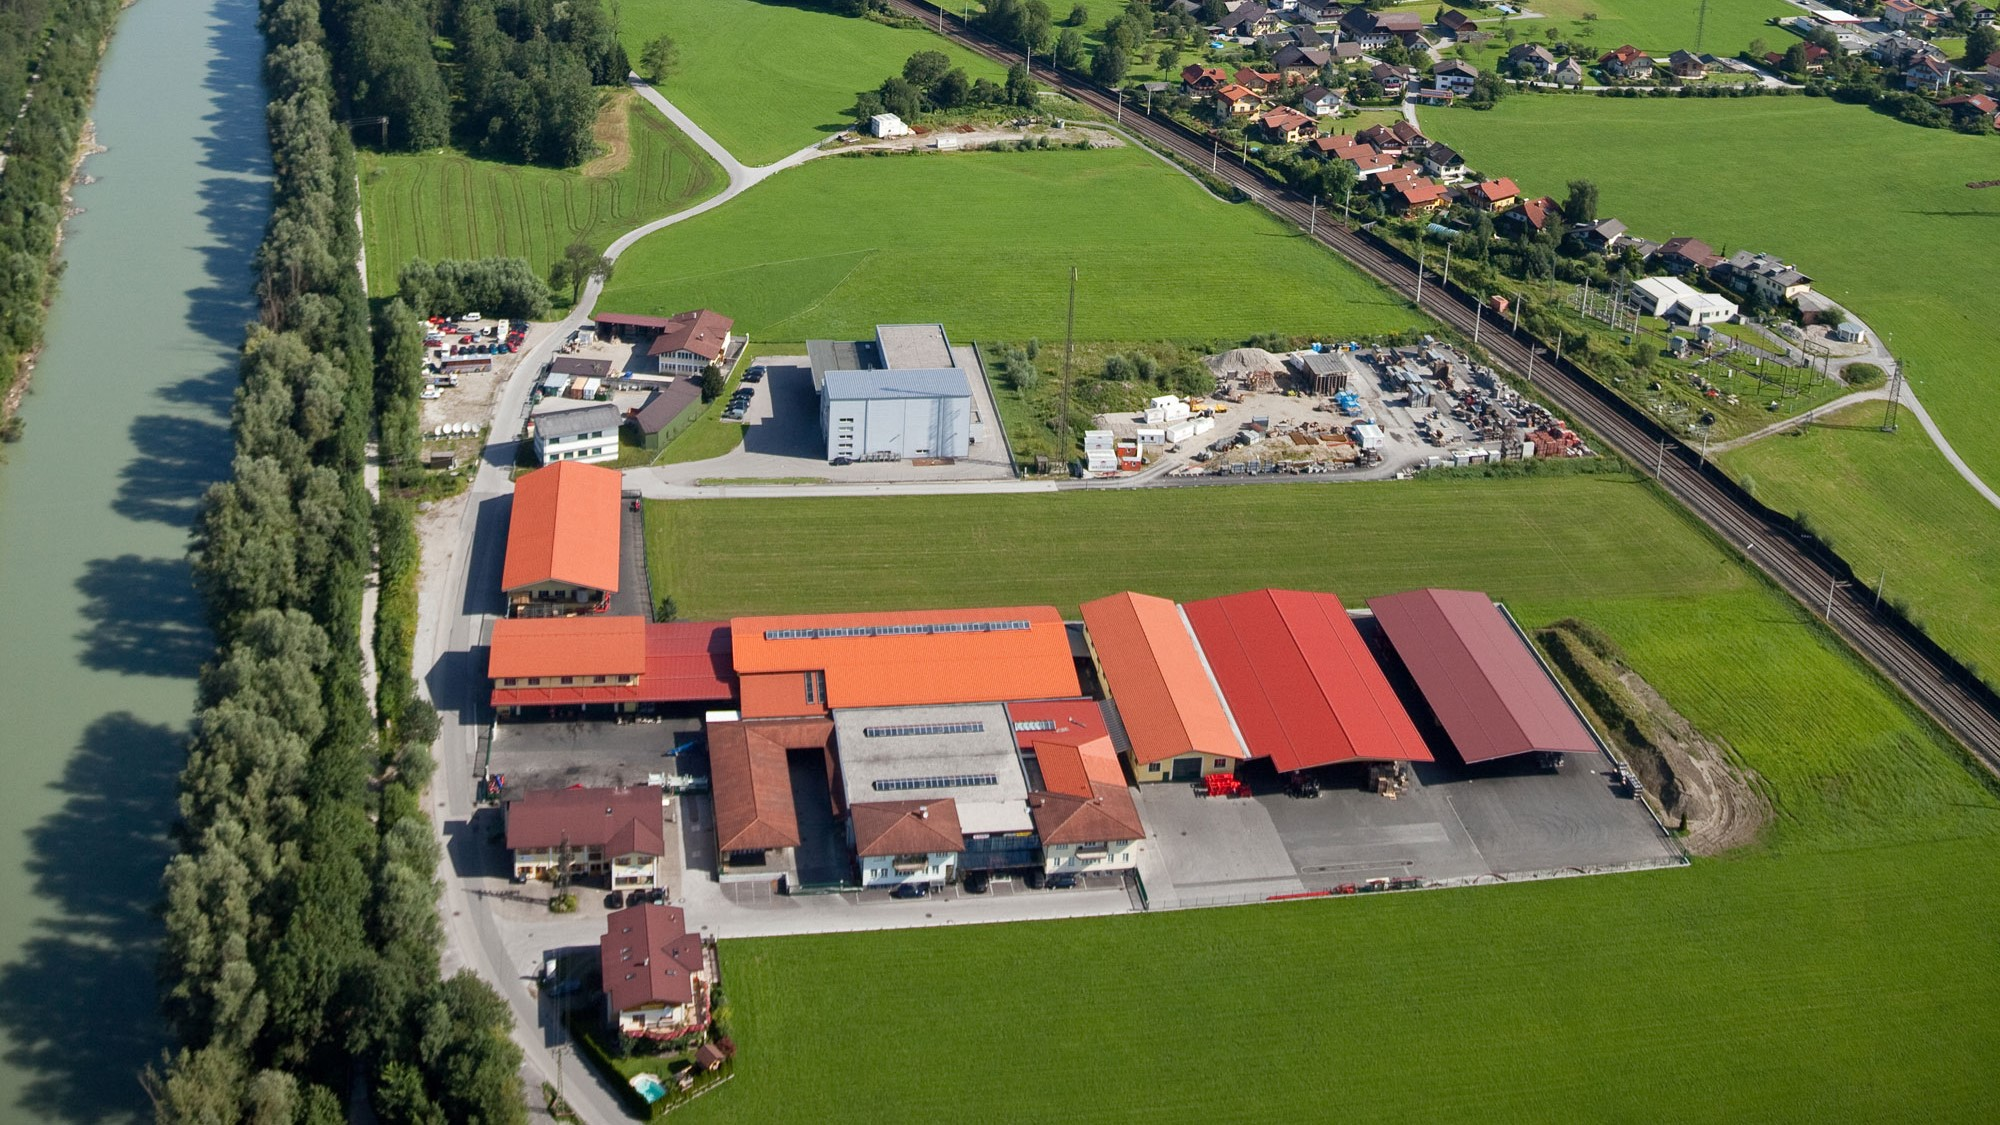 STEPA Farmkran GmbH